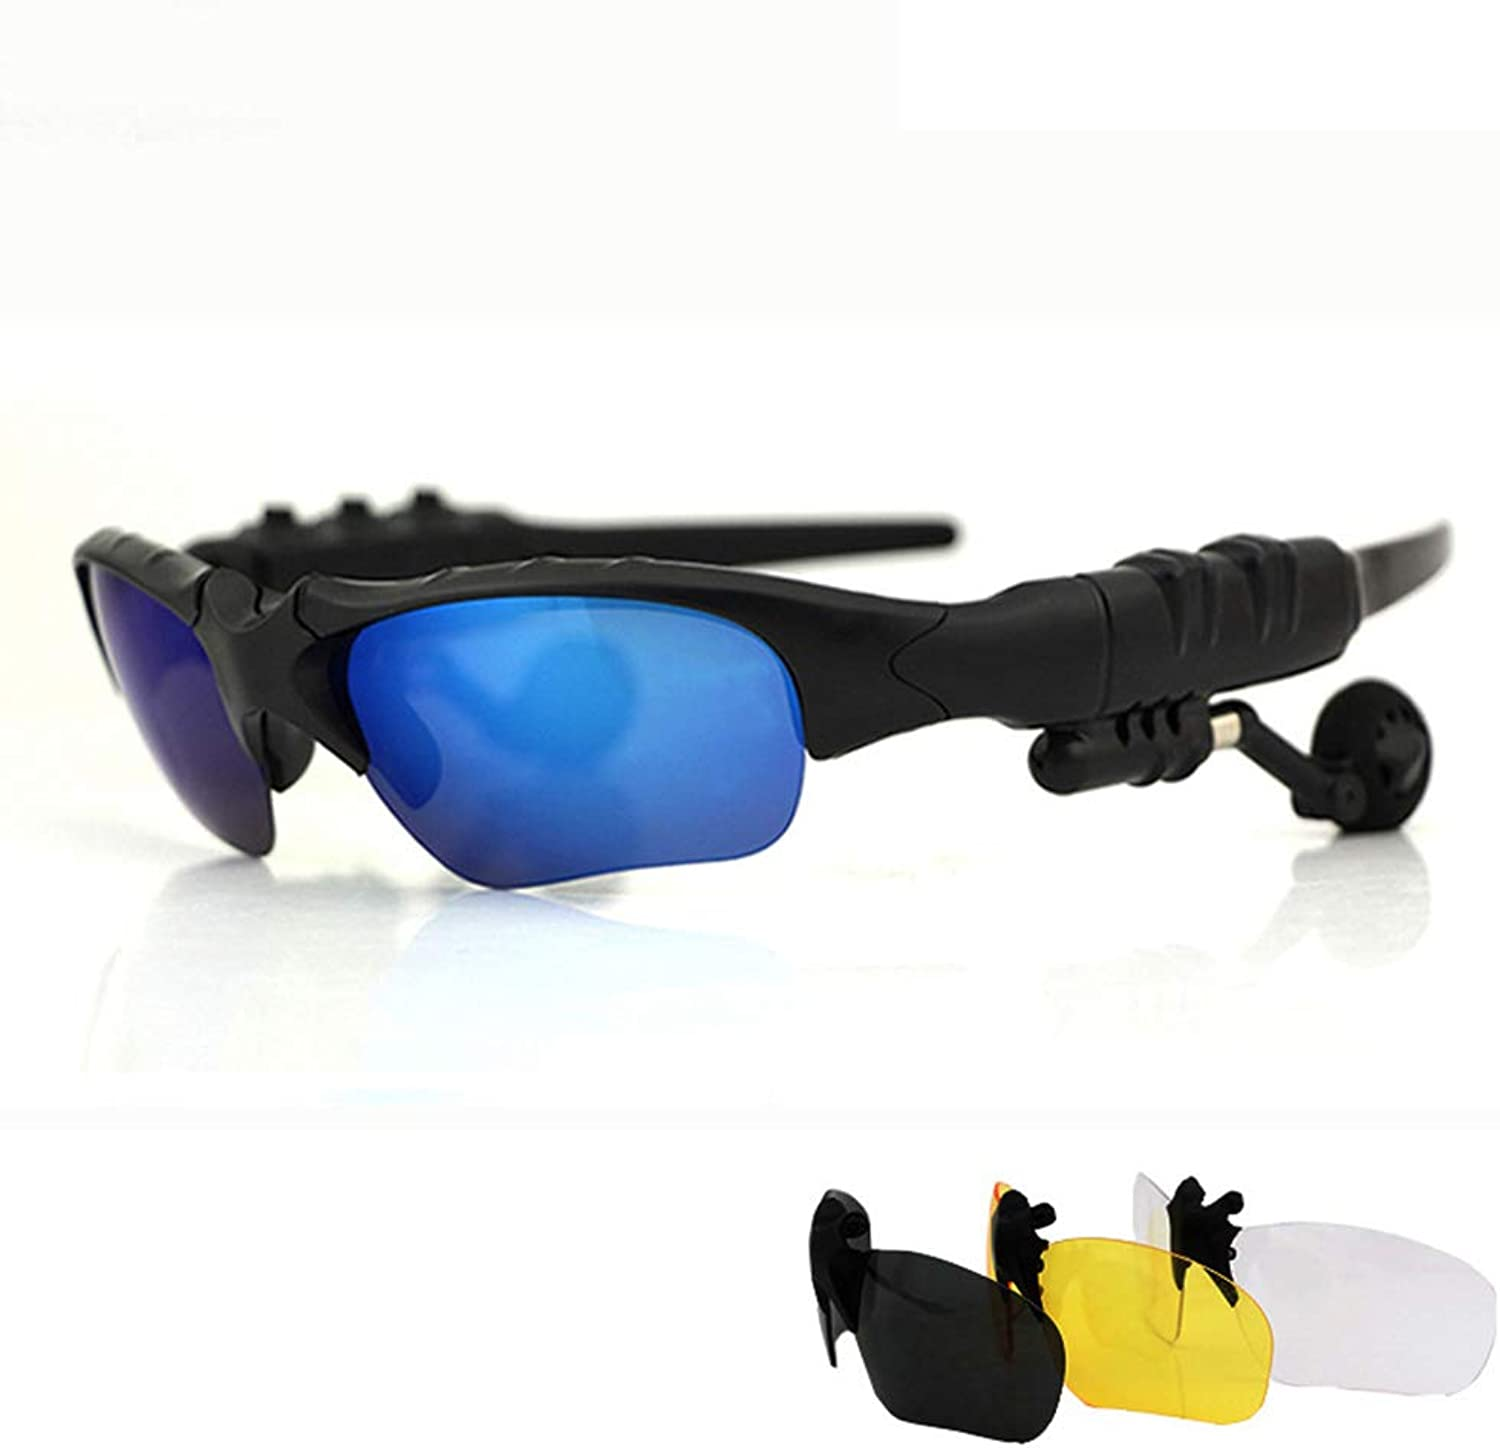 blueeetooth Sports Glasses, EyePredective Polarized Sunglasses, AntiGlare, Driving Riding Windproof Glasses, with Stereo Headphones